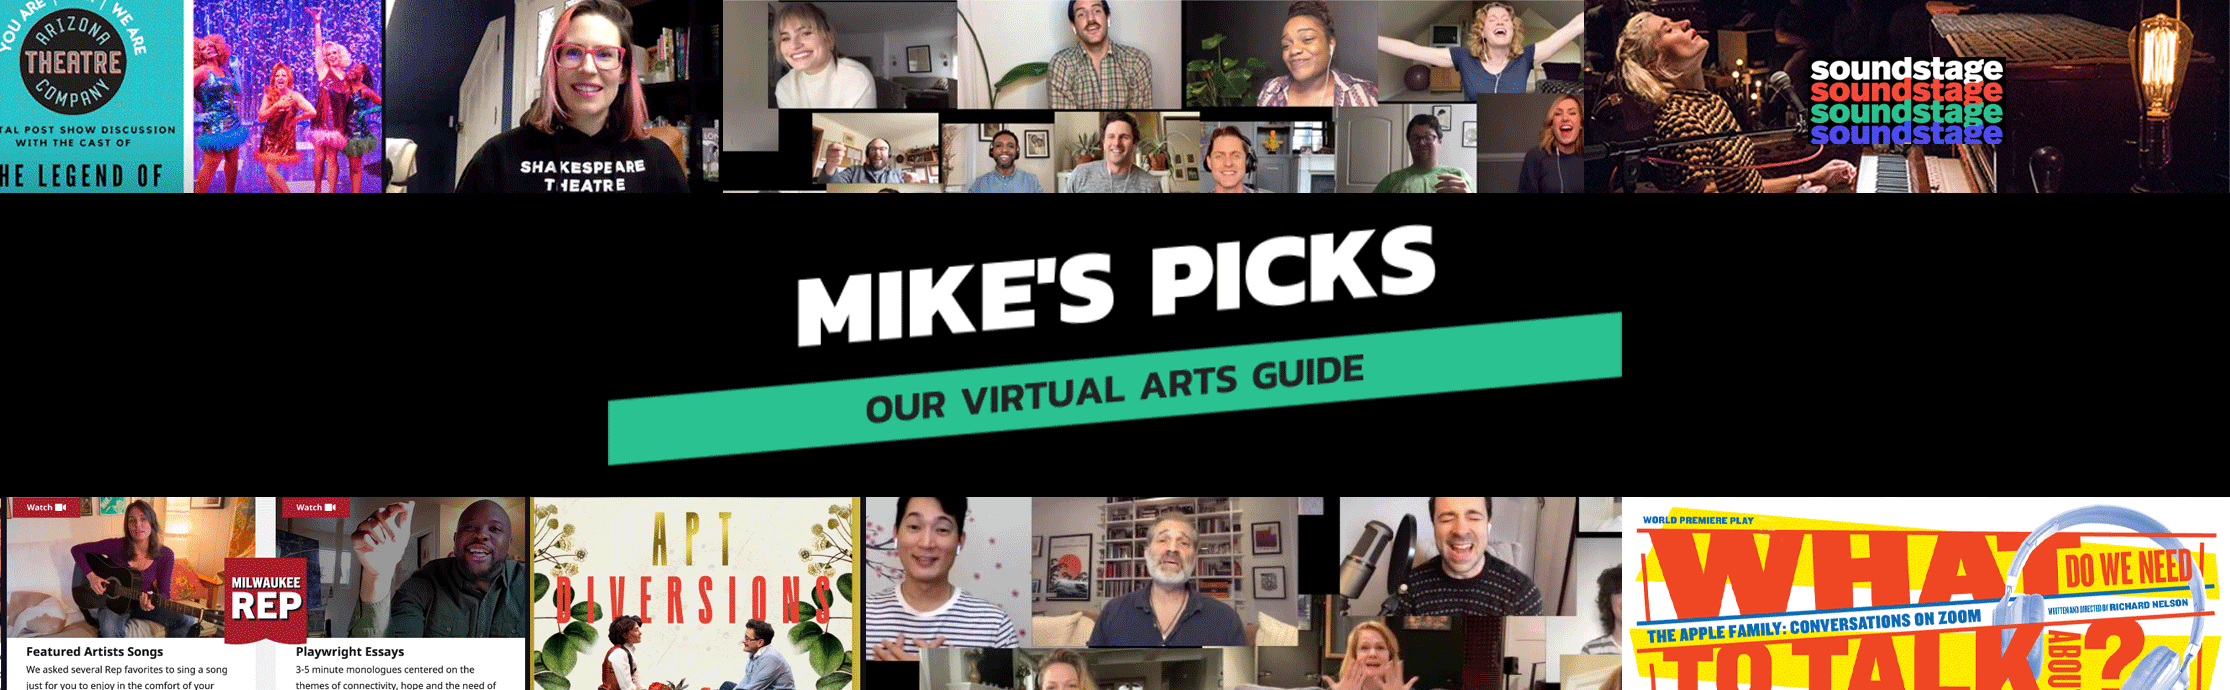 Mike's Picks for Forward Theatre